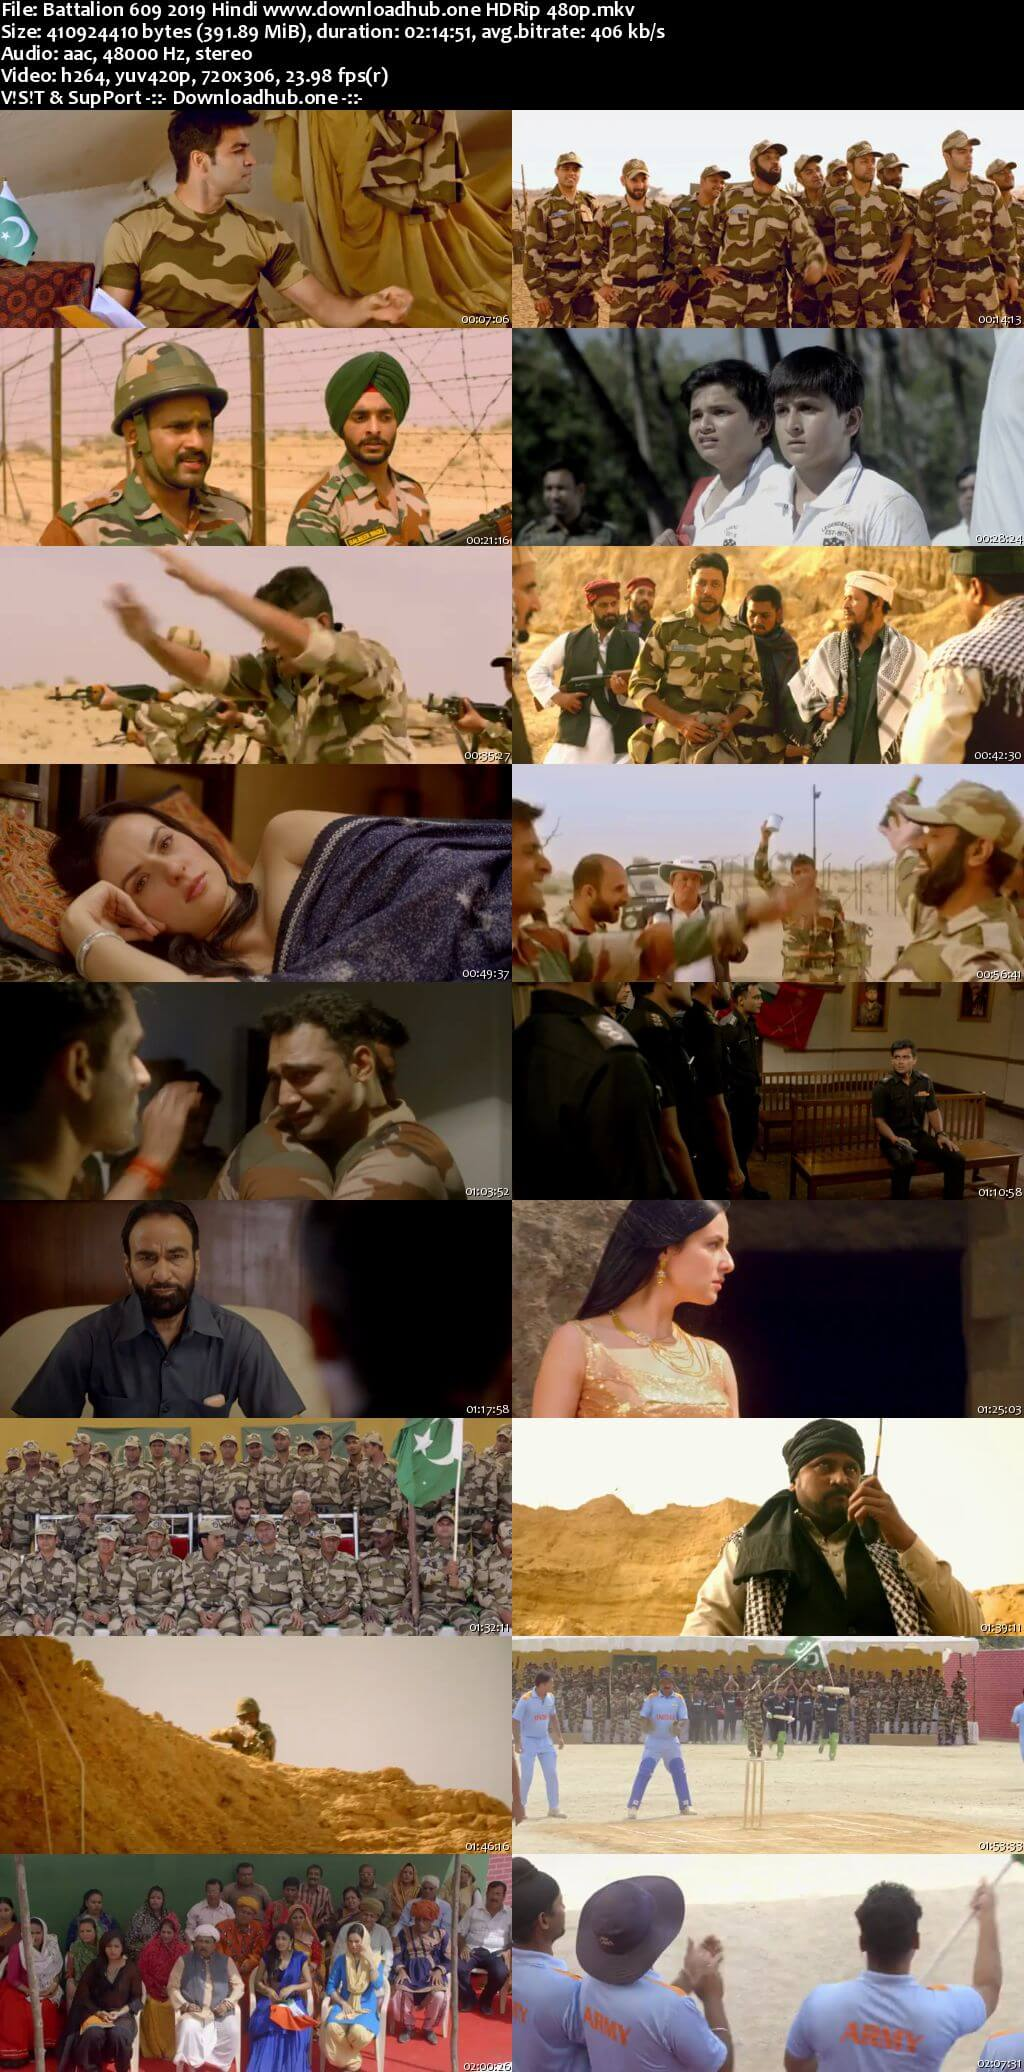 Battalion 609 2019 Hindi 400MB HDRip 480p